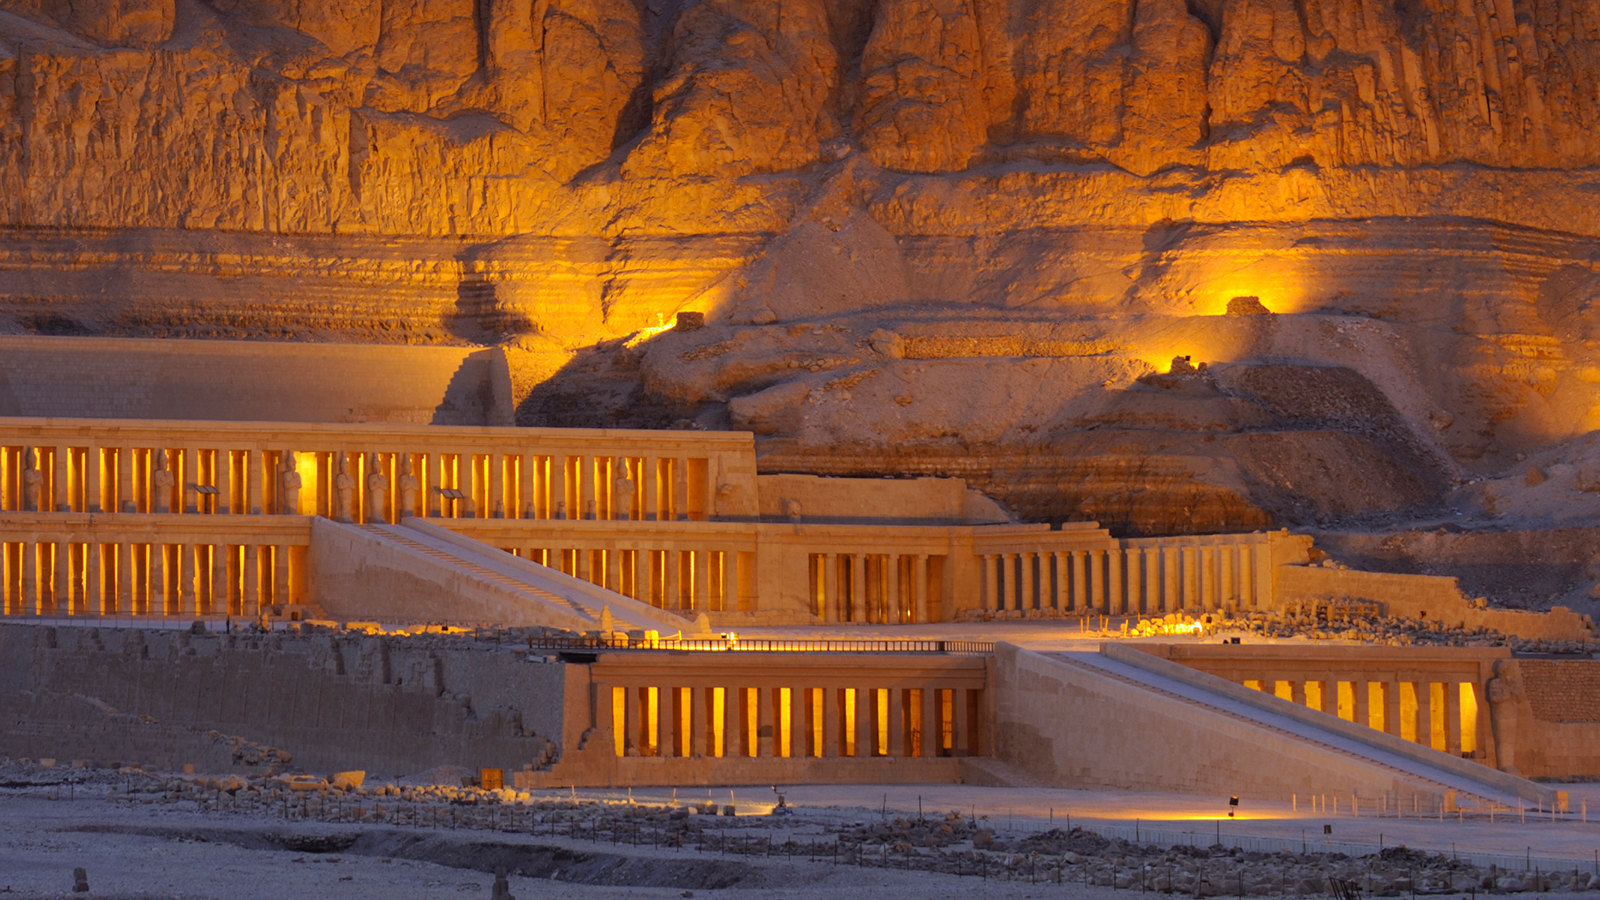 Hatshepsut's mortuary temple rises against a desert bluff. (Kenneth Garrett/Getty Images)